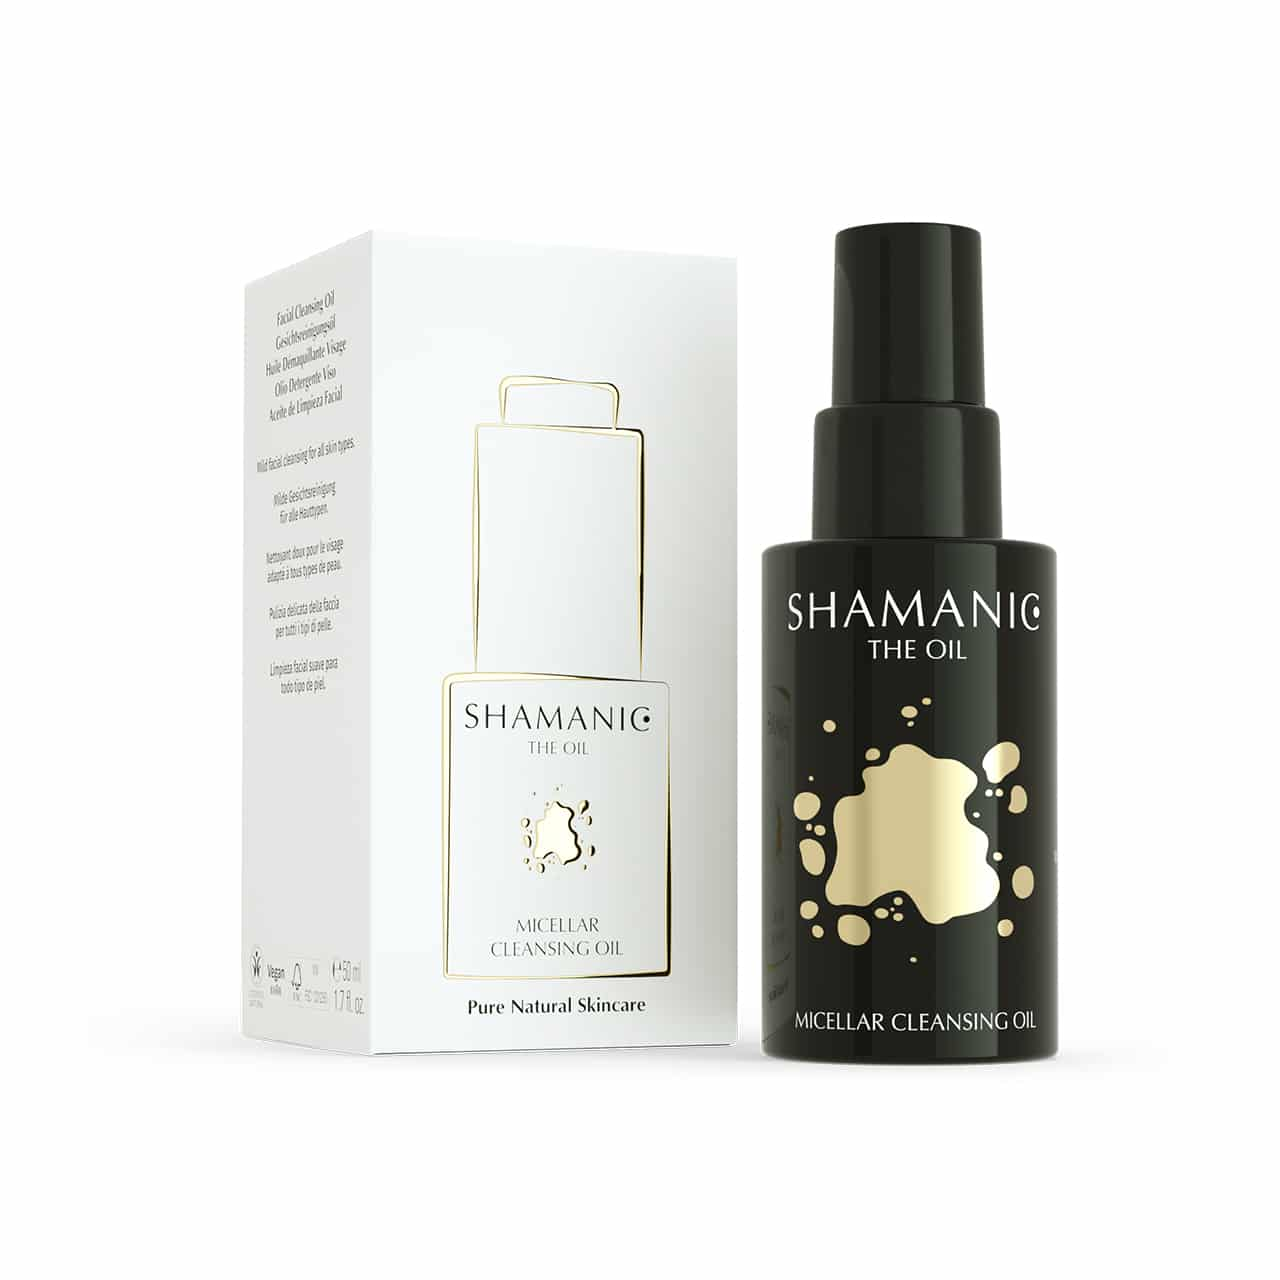 shamanic micellar cleansing oil